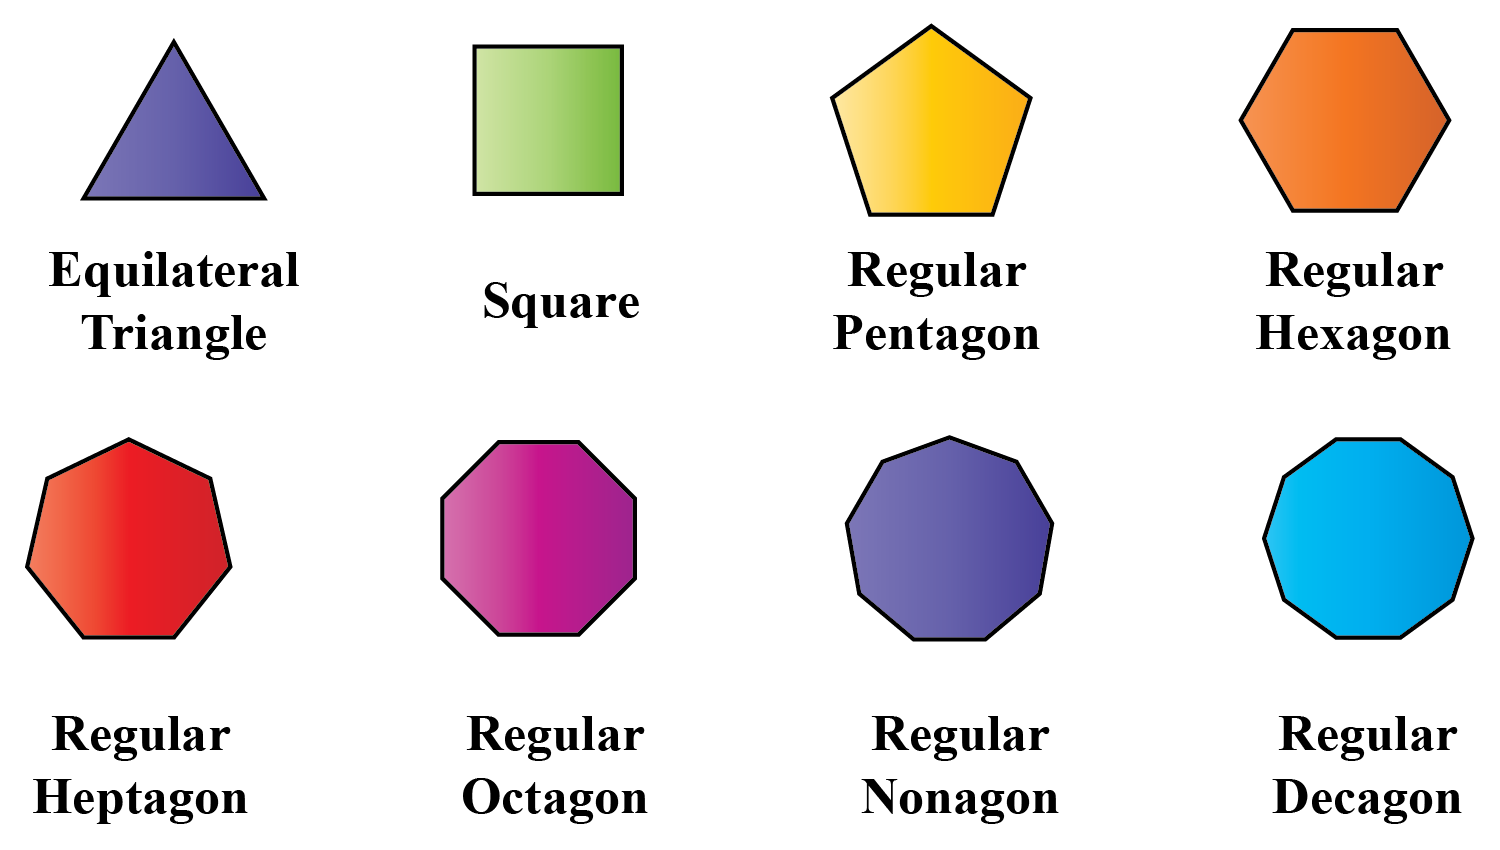 Examples of regular polygons